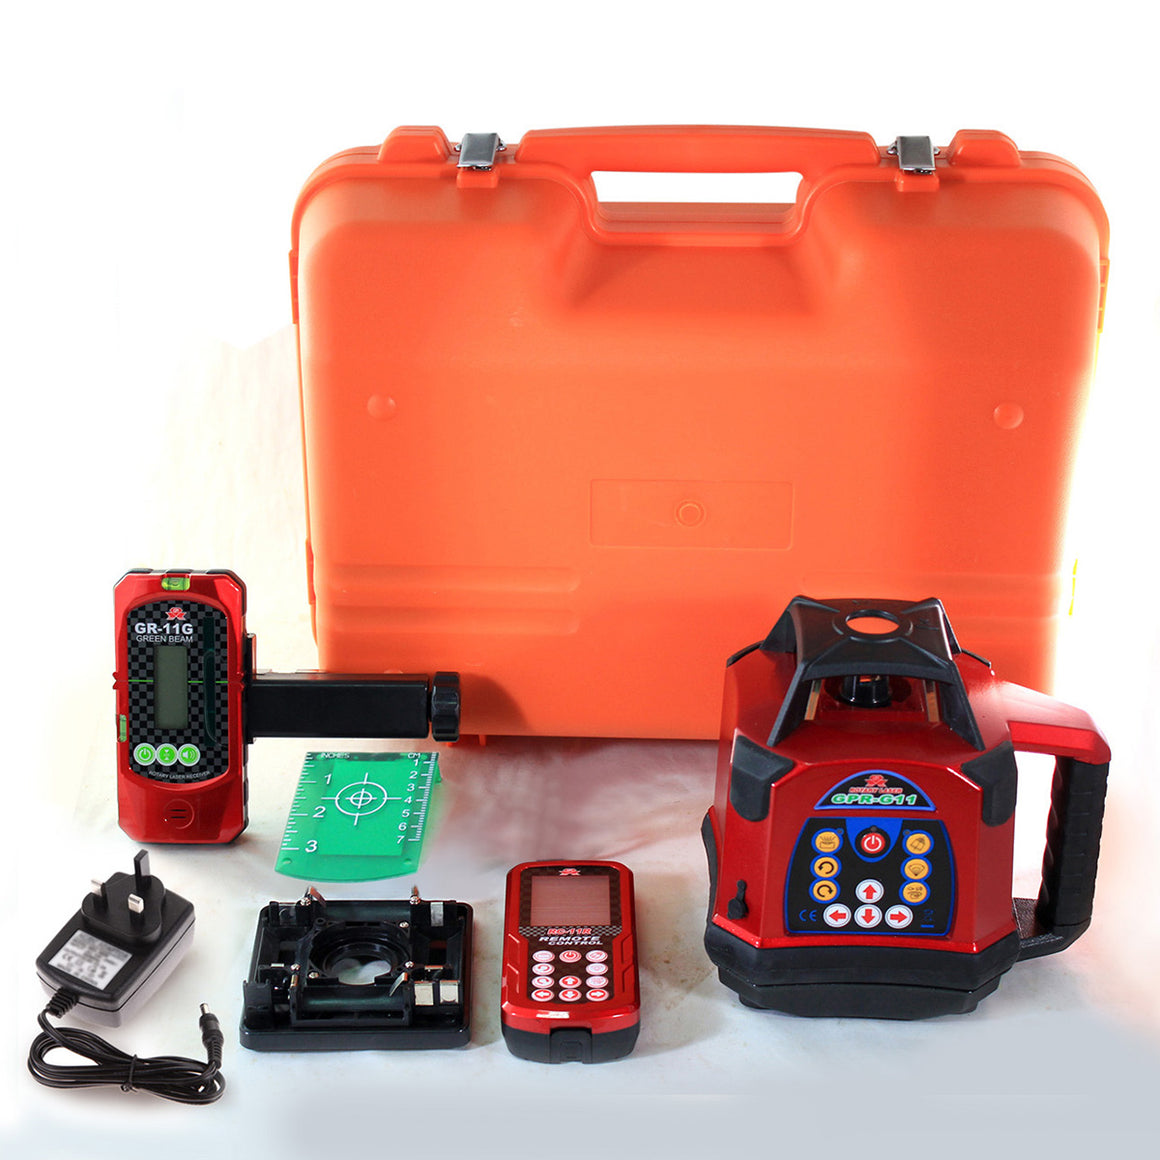 GPR-G11 Green Beam Rotary Laser Level